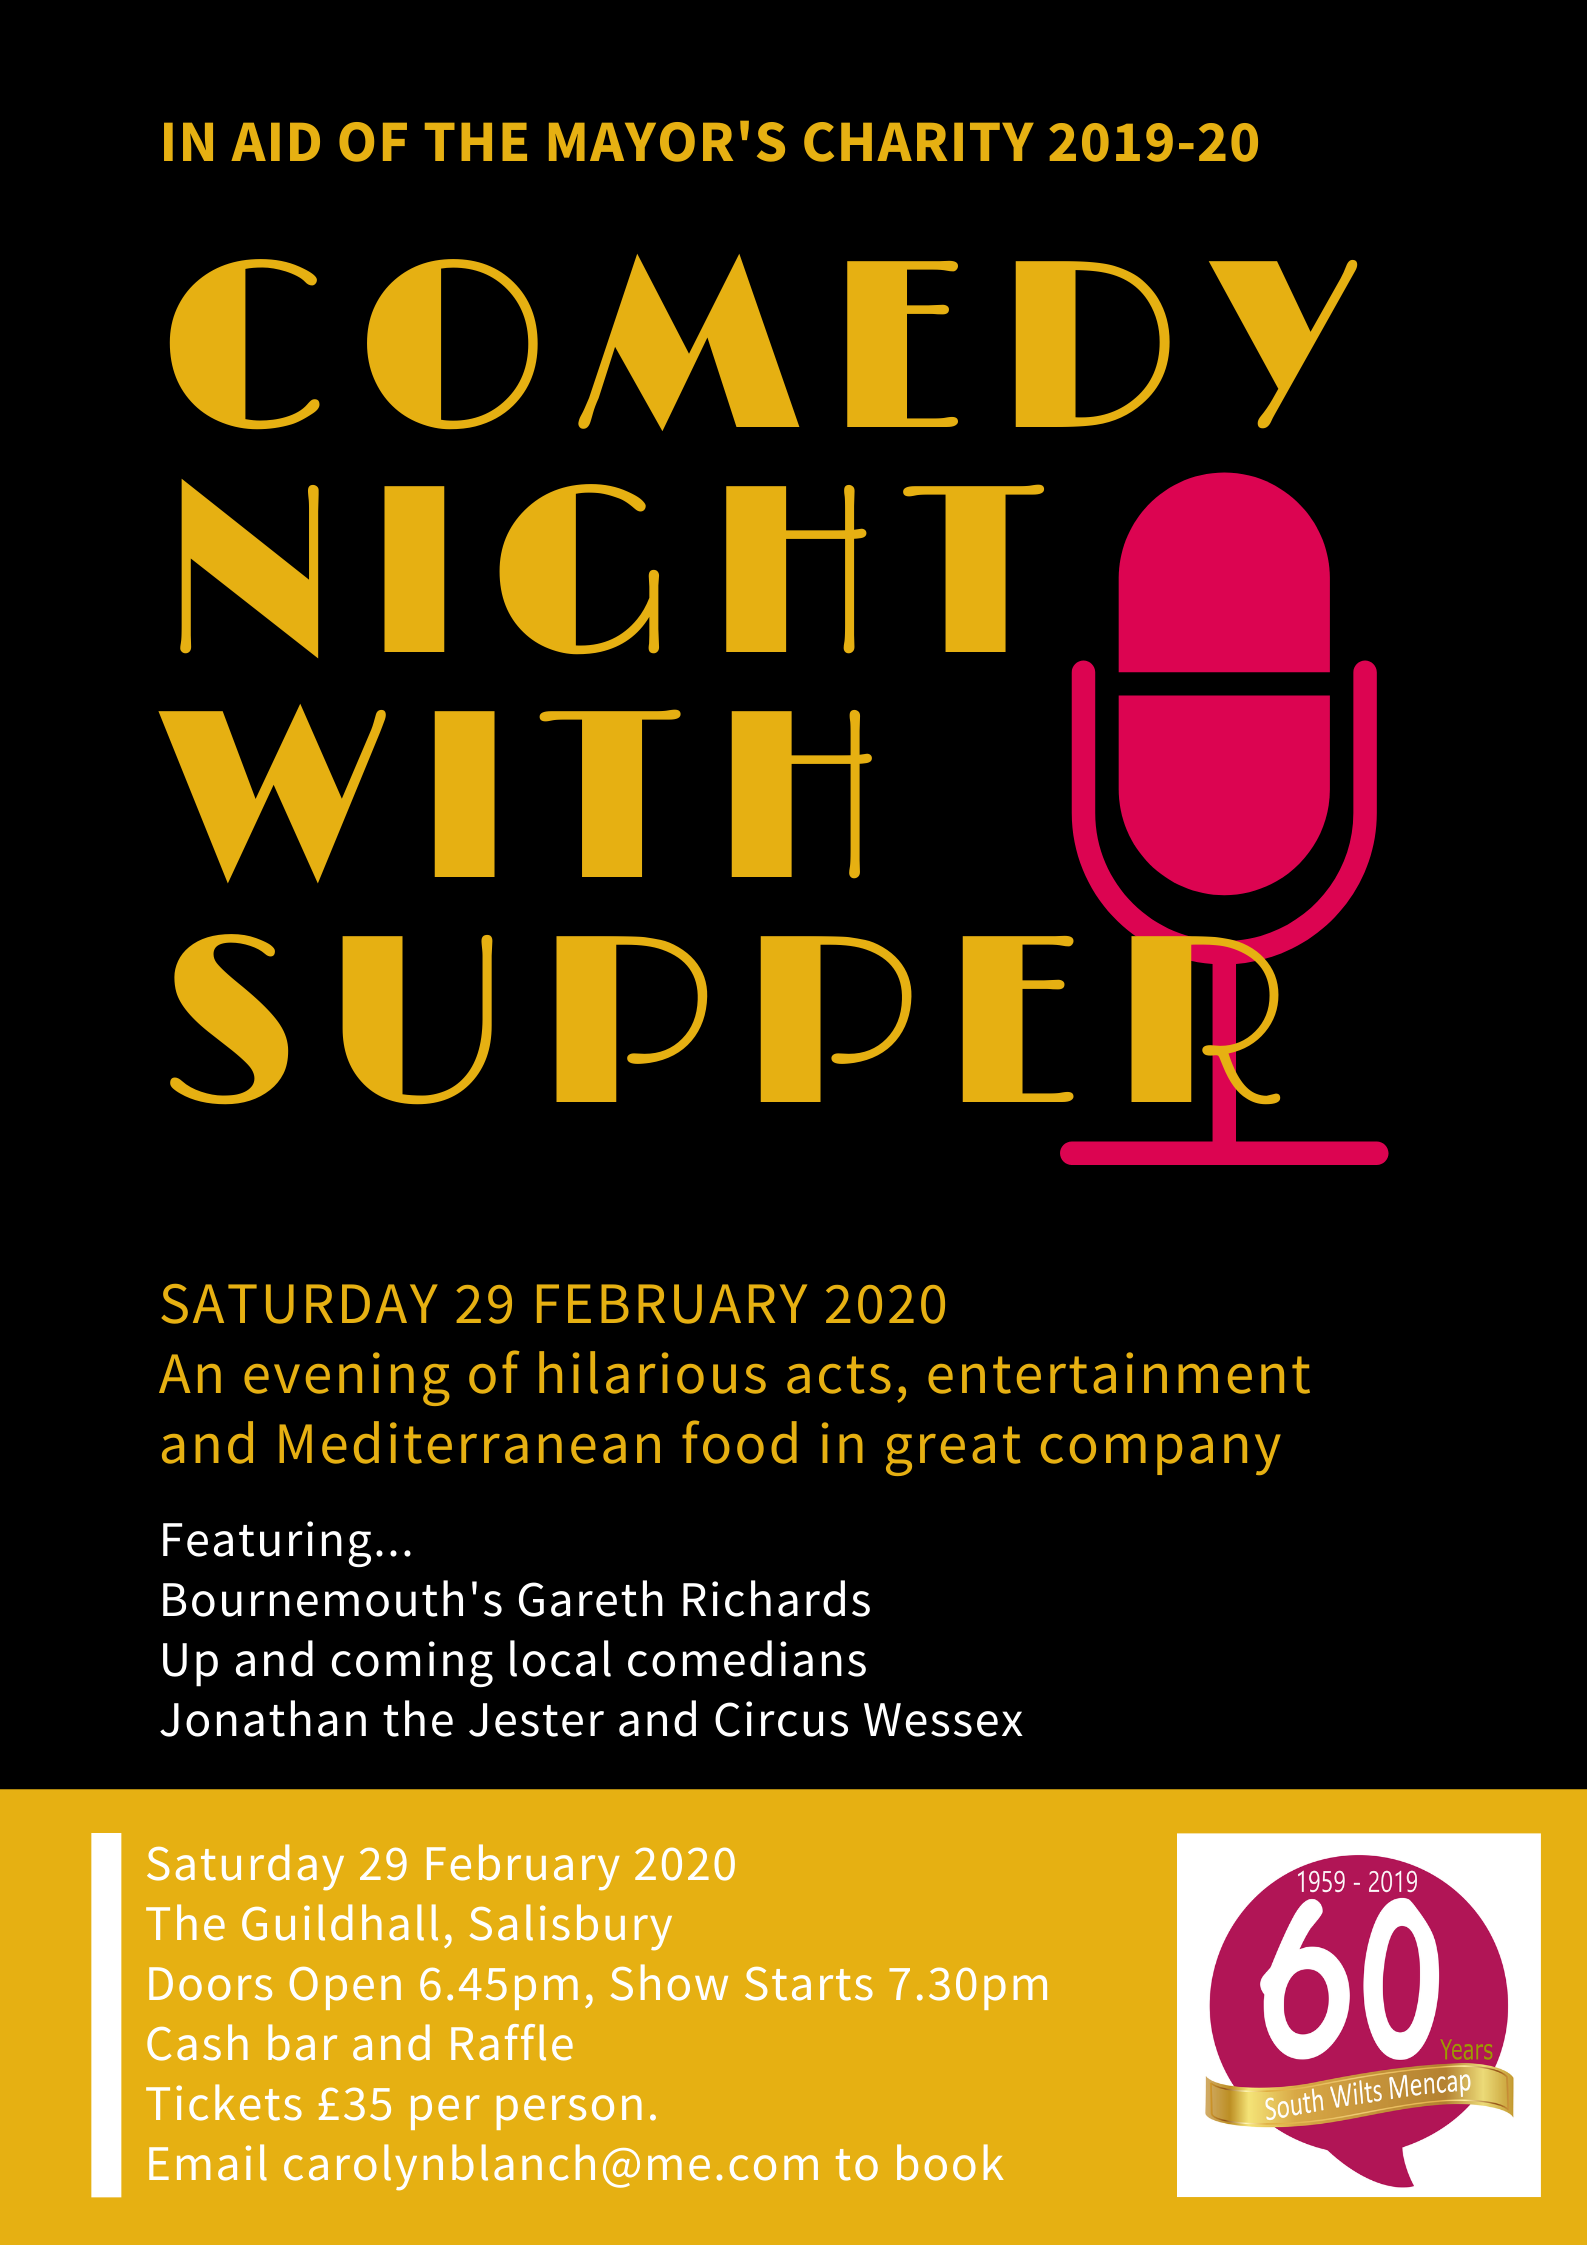 Comedy Night with Supper